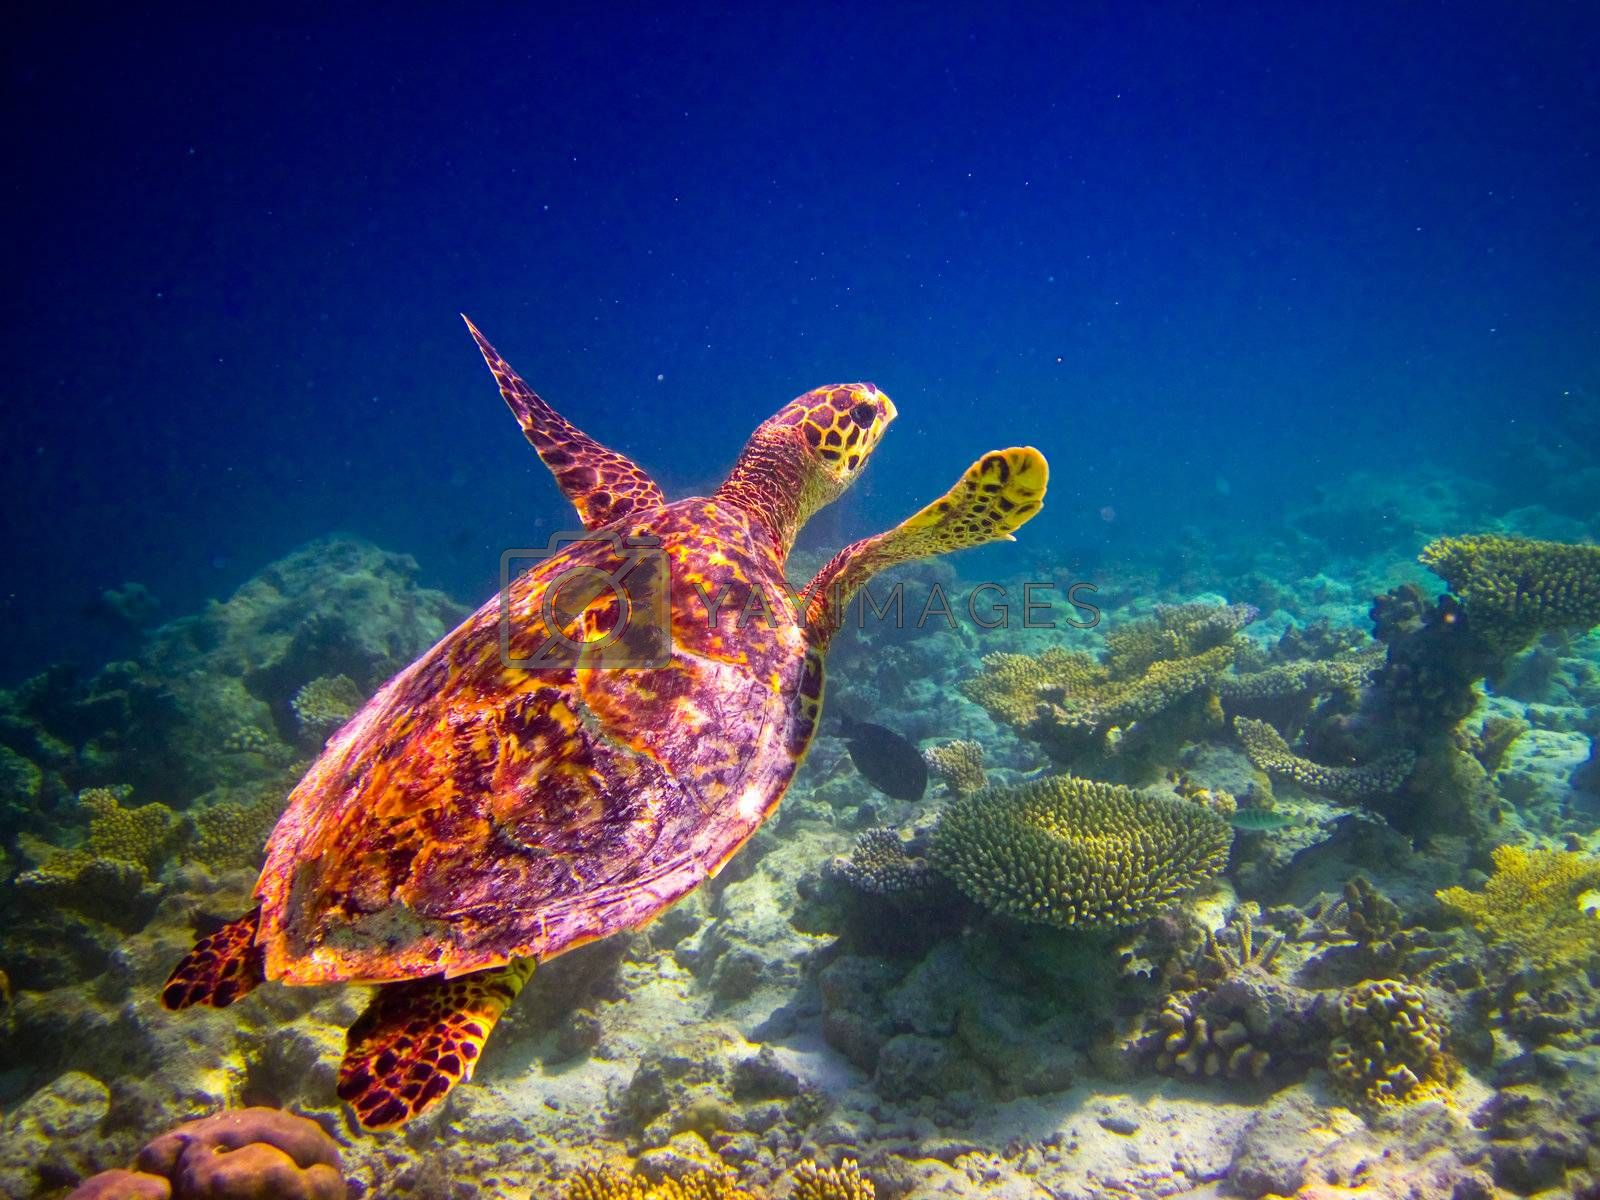 Royalty free image of Hawksbill Turtle swiming like flying by anobis